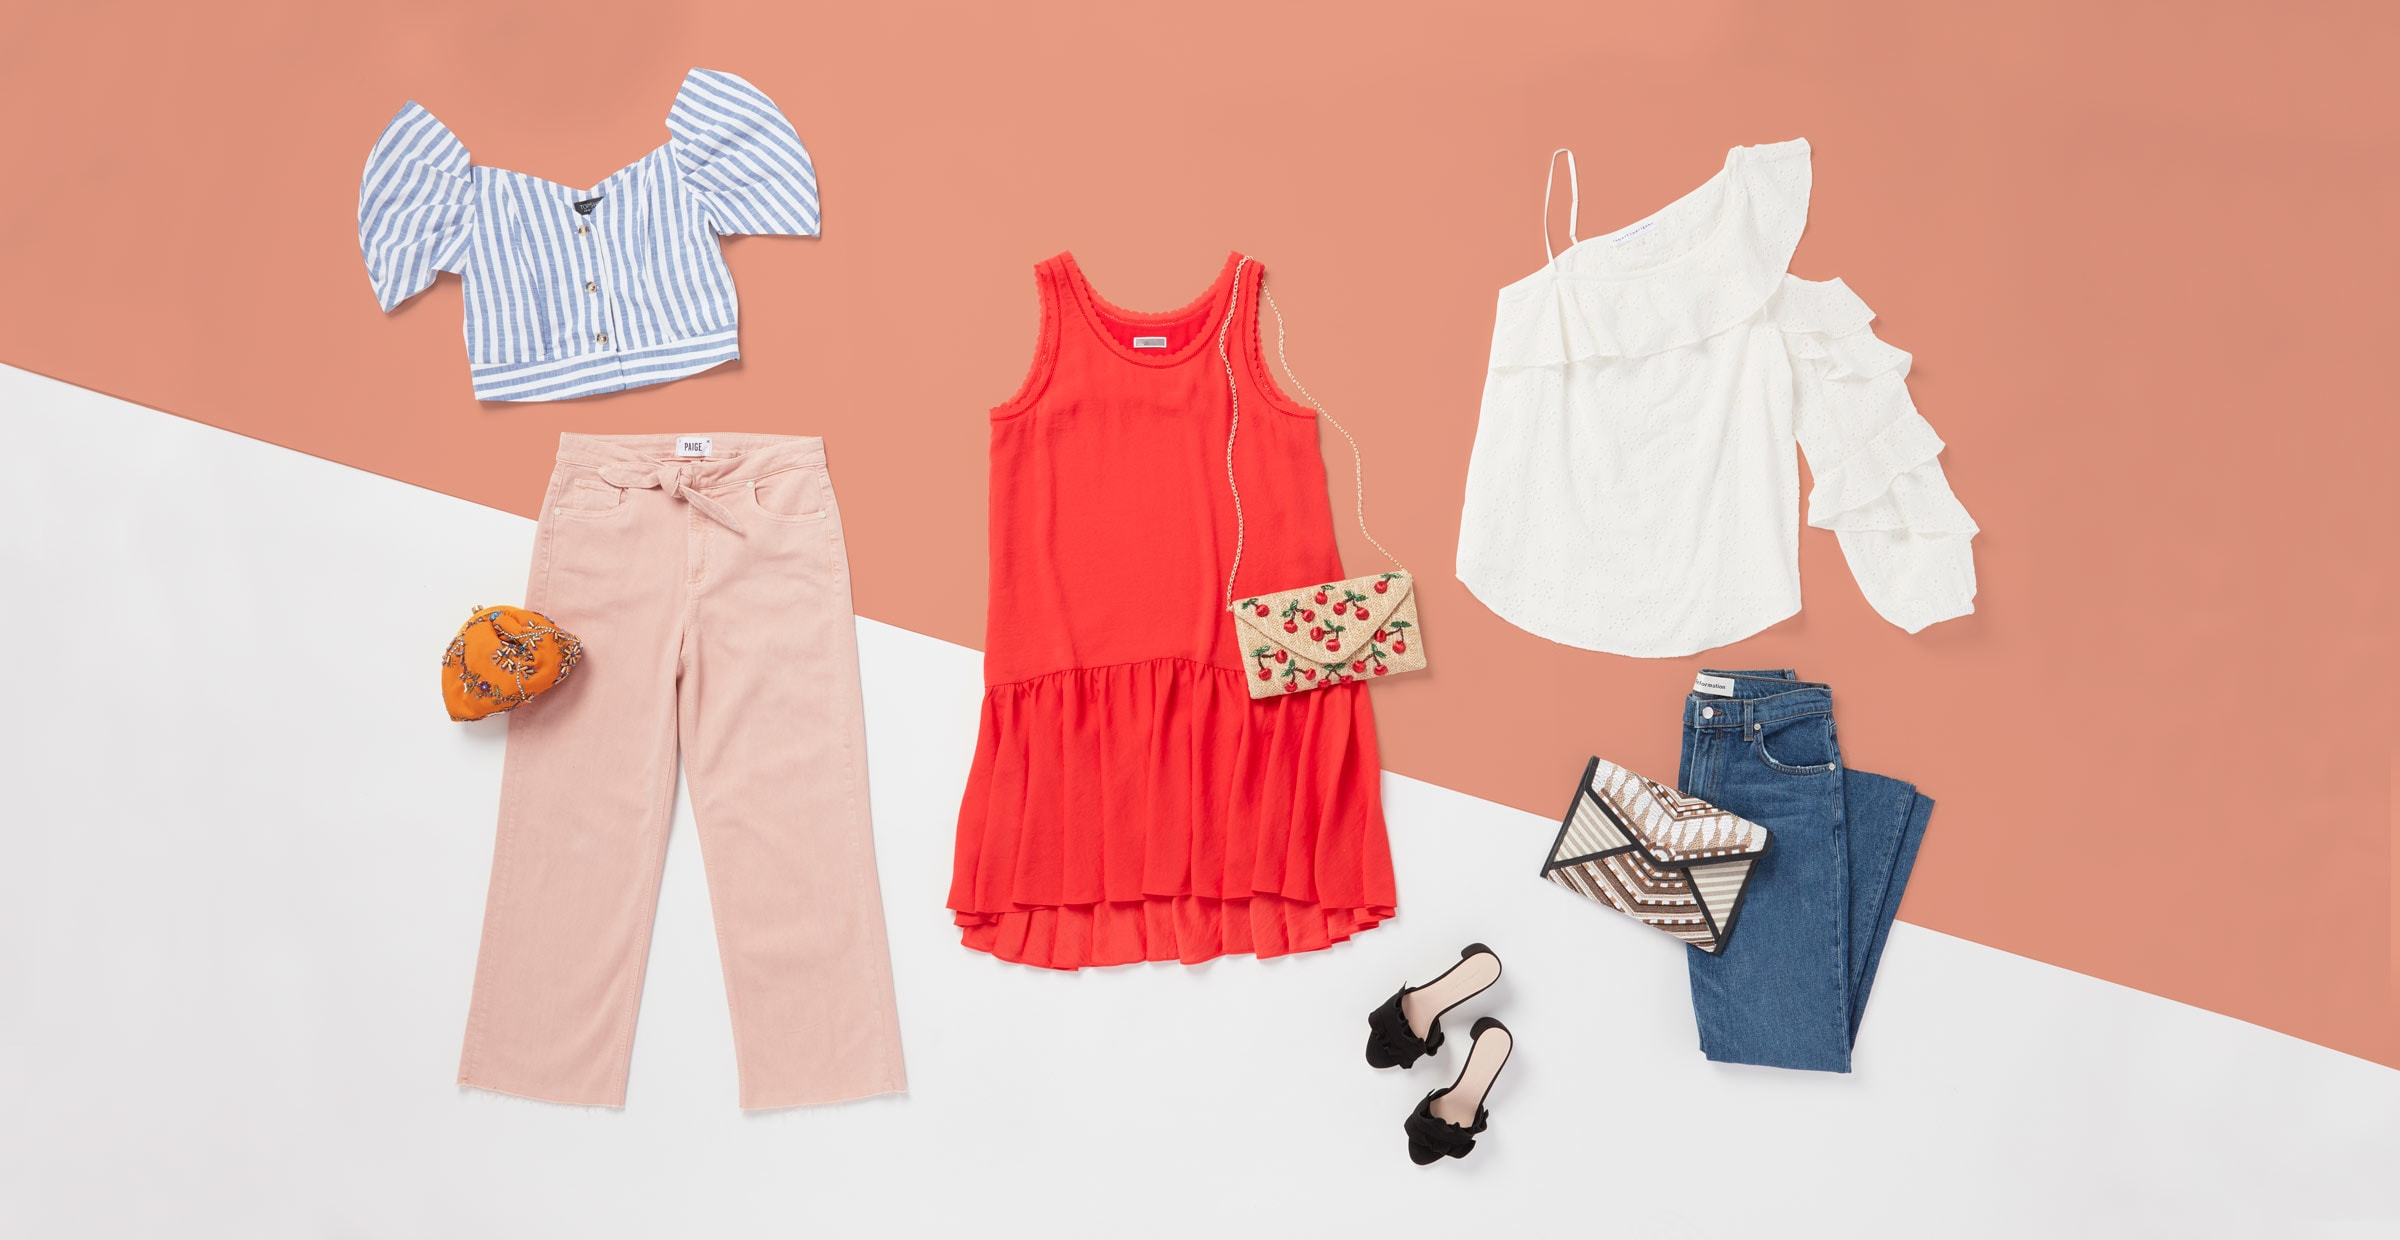 Going out with the Girls? Here's What to Wear